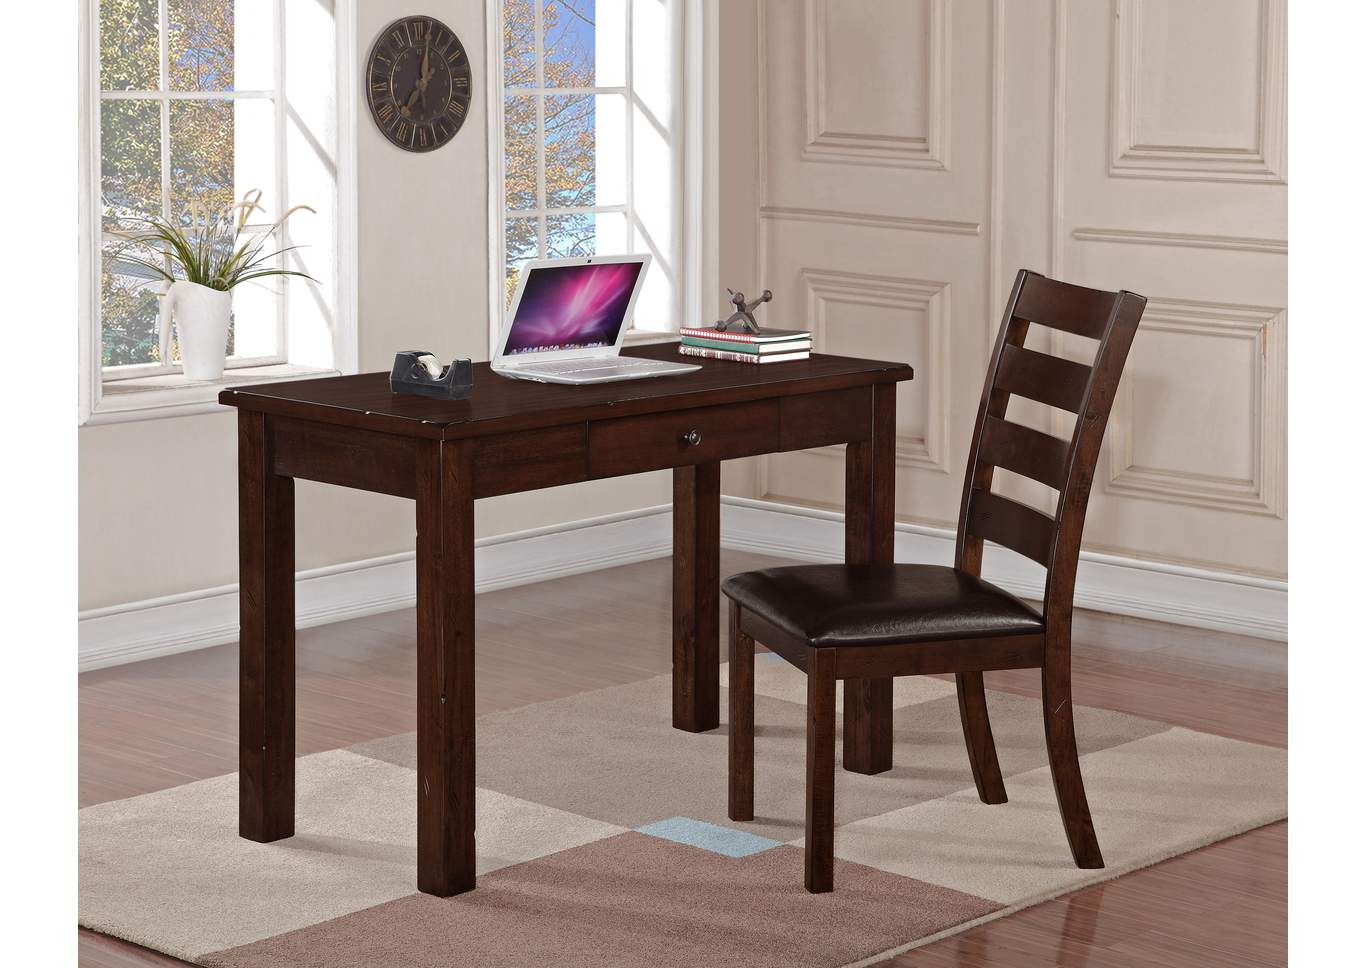 The Furniture Shop Duncanville Tx Quinn Desk Chair